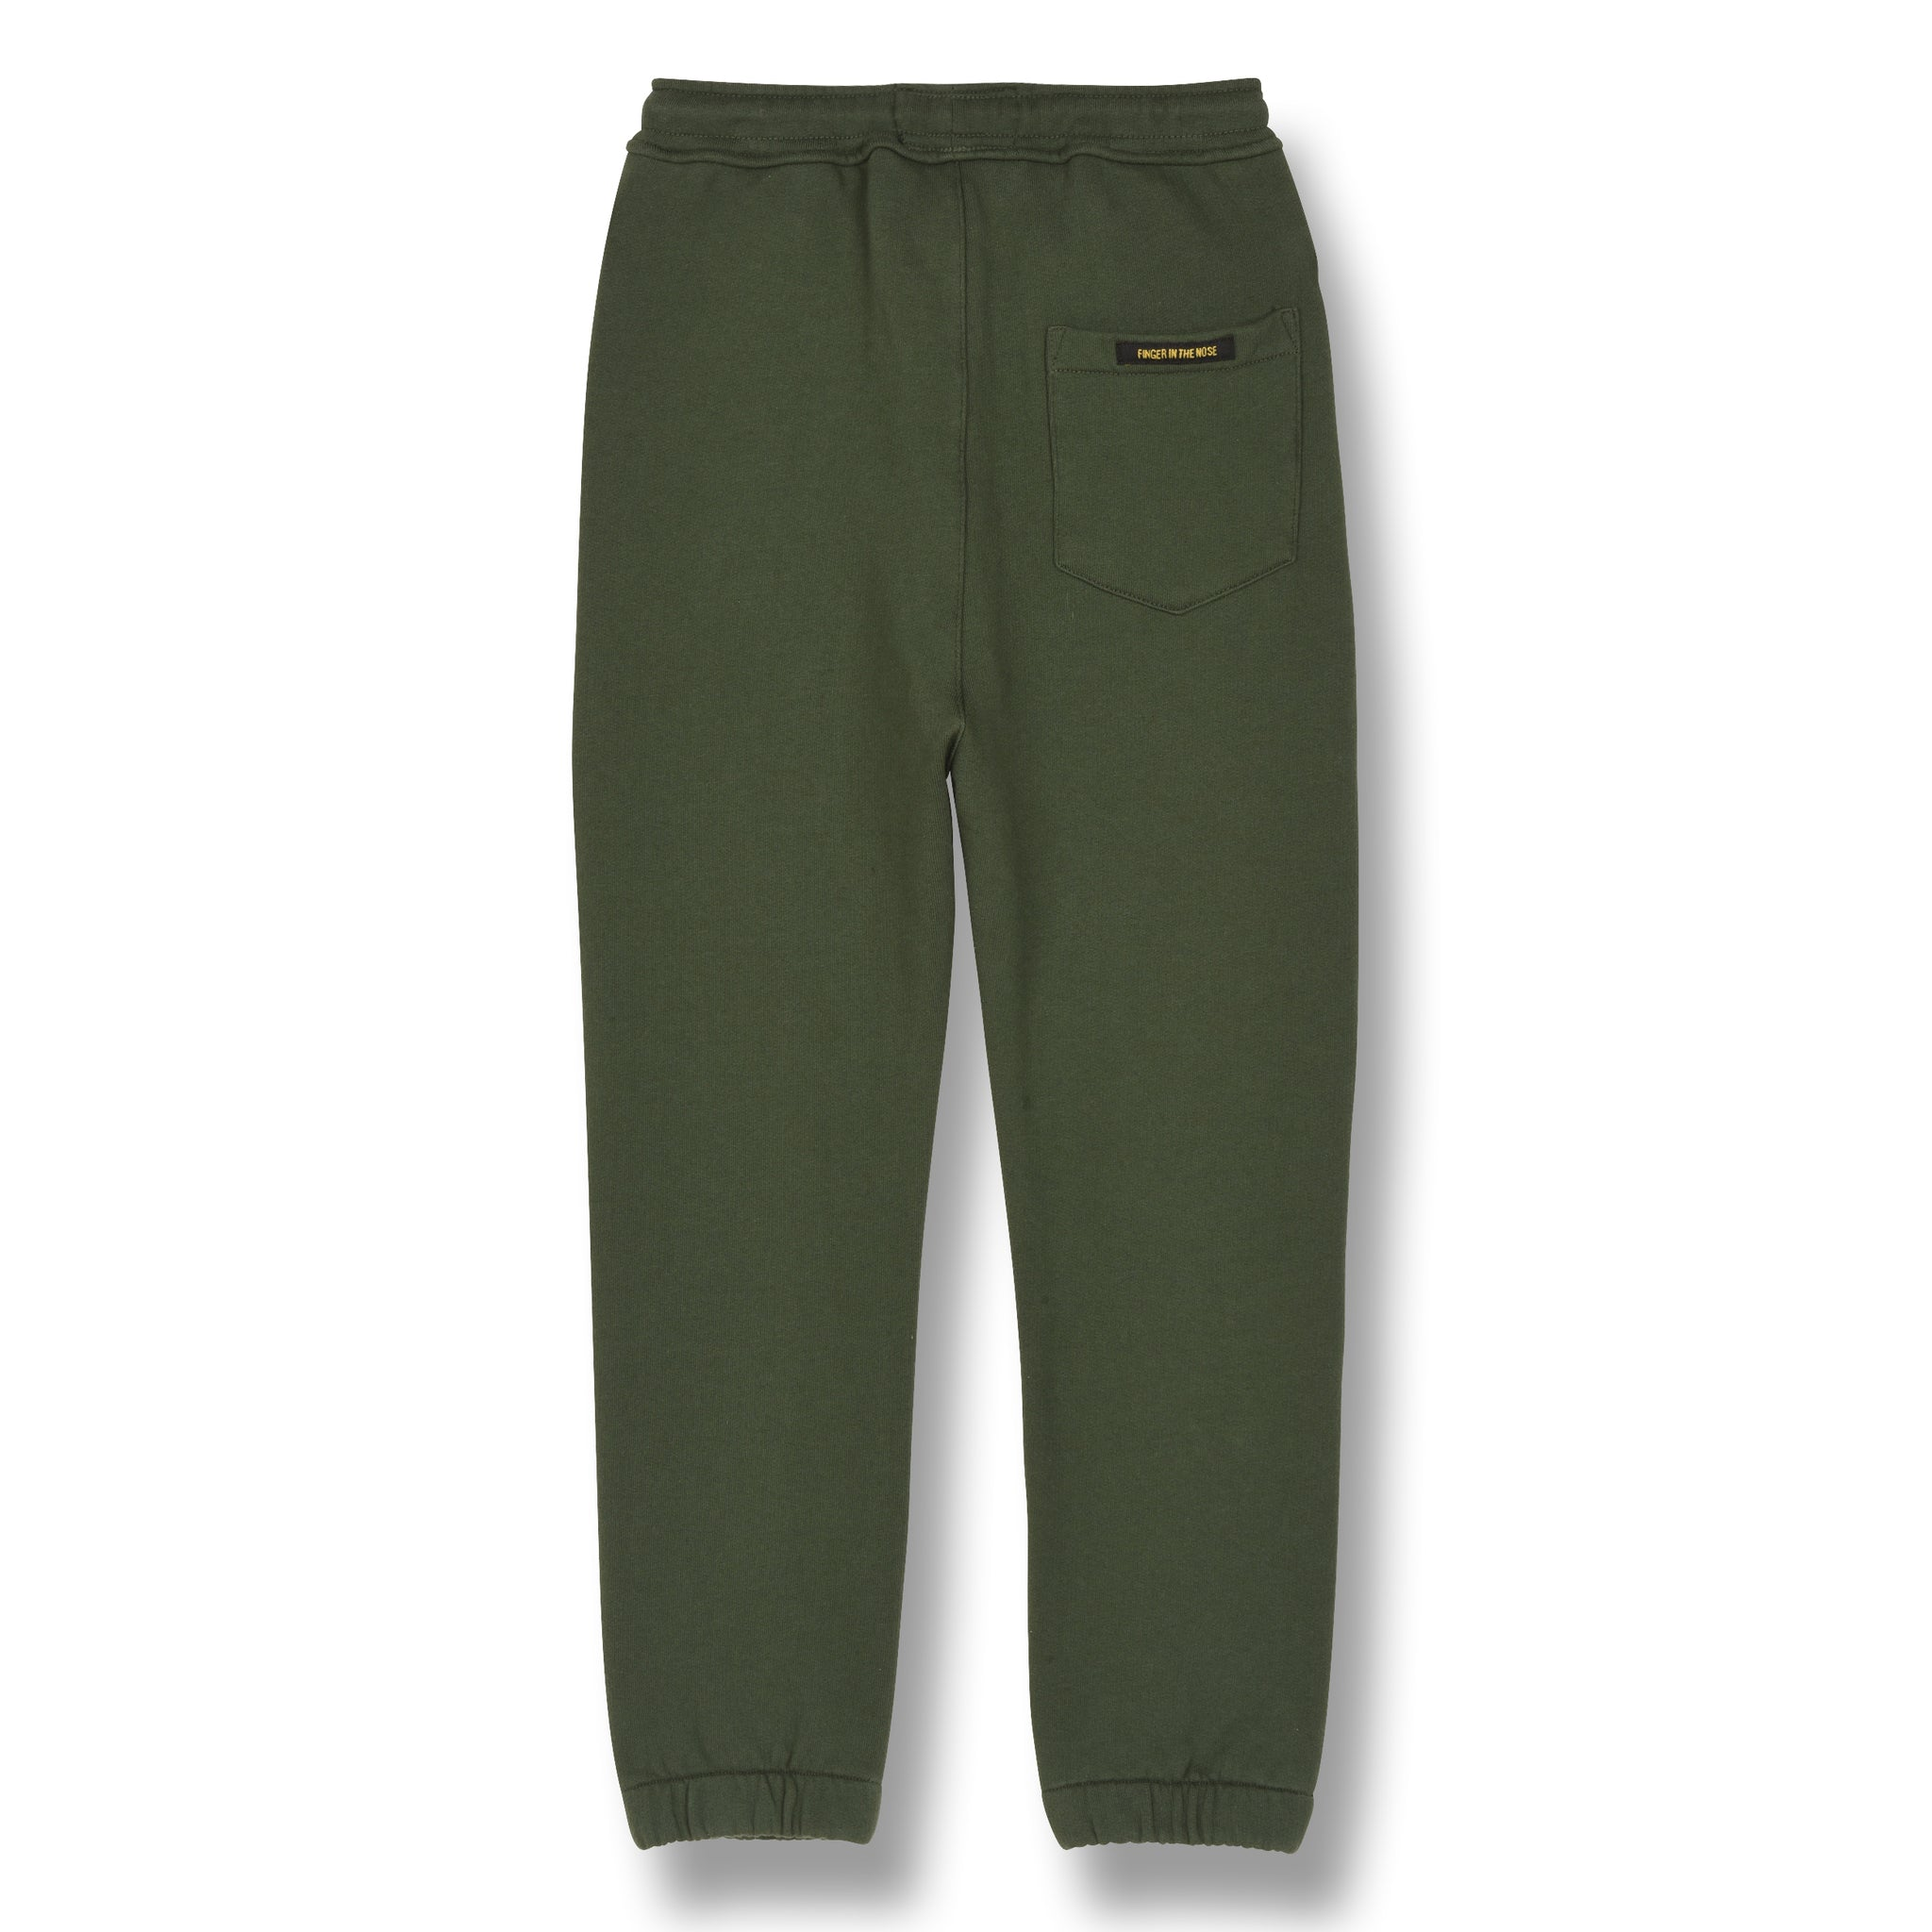 CONOR Khaki - Jogging Pants 2